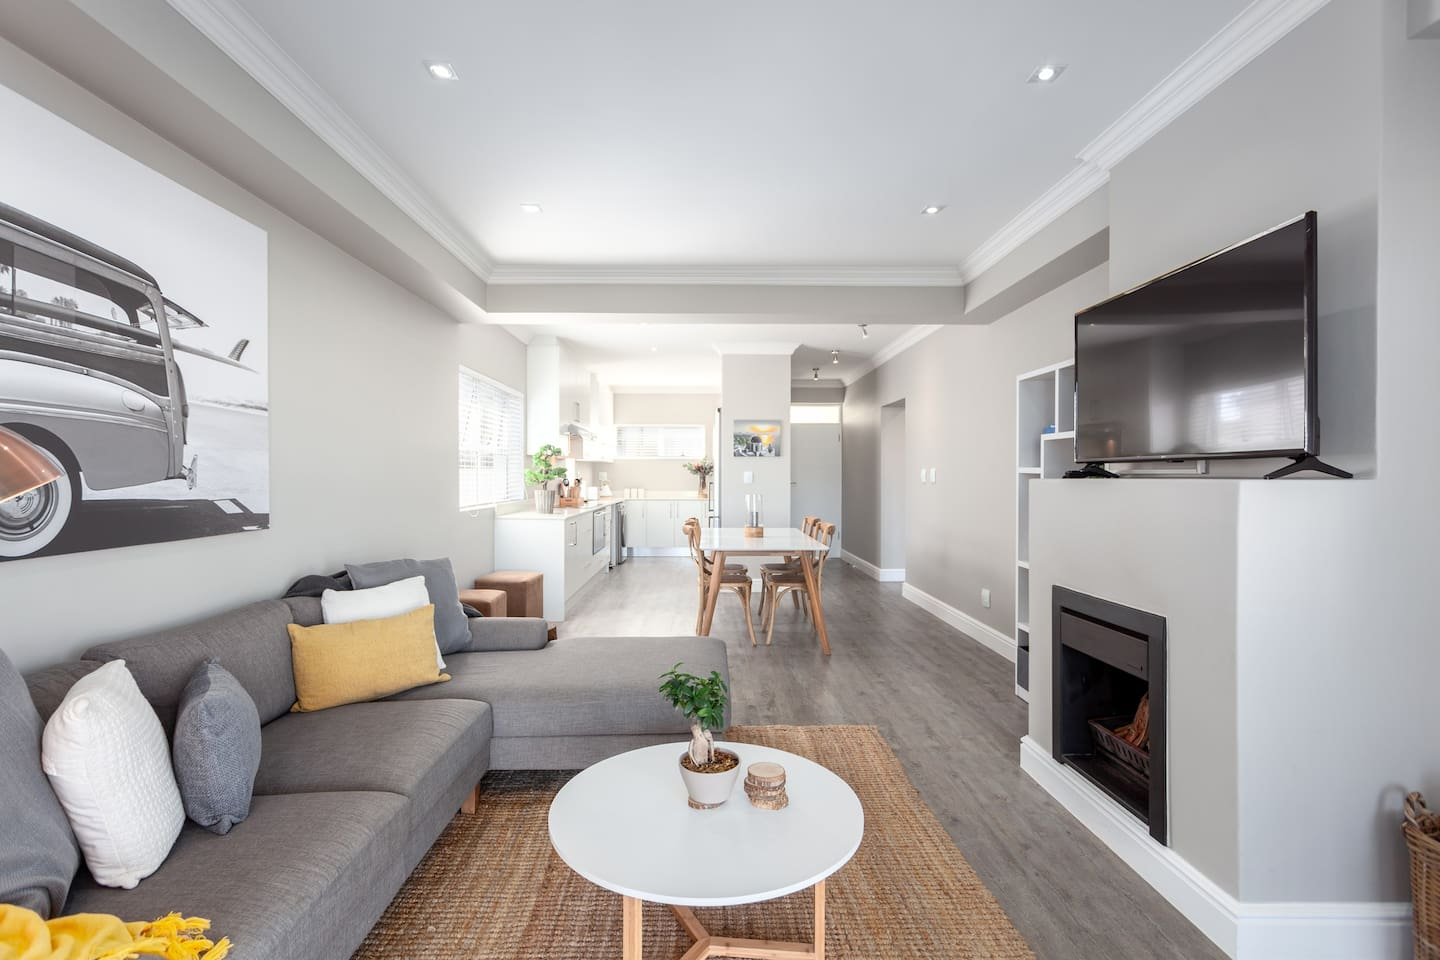 Open plan living & Dining area leading out onto balcony